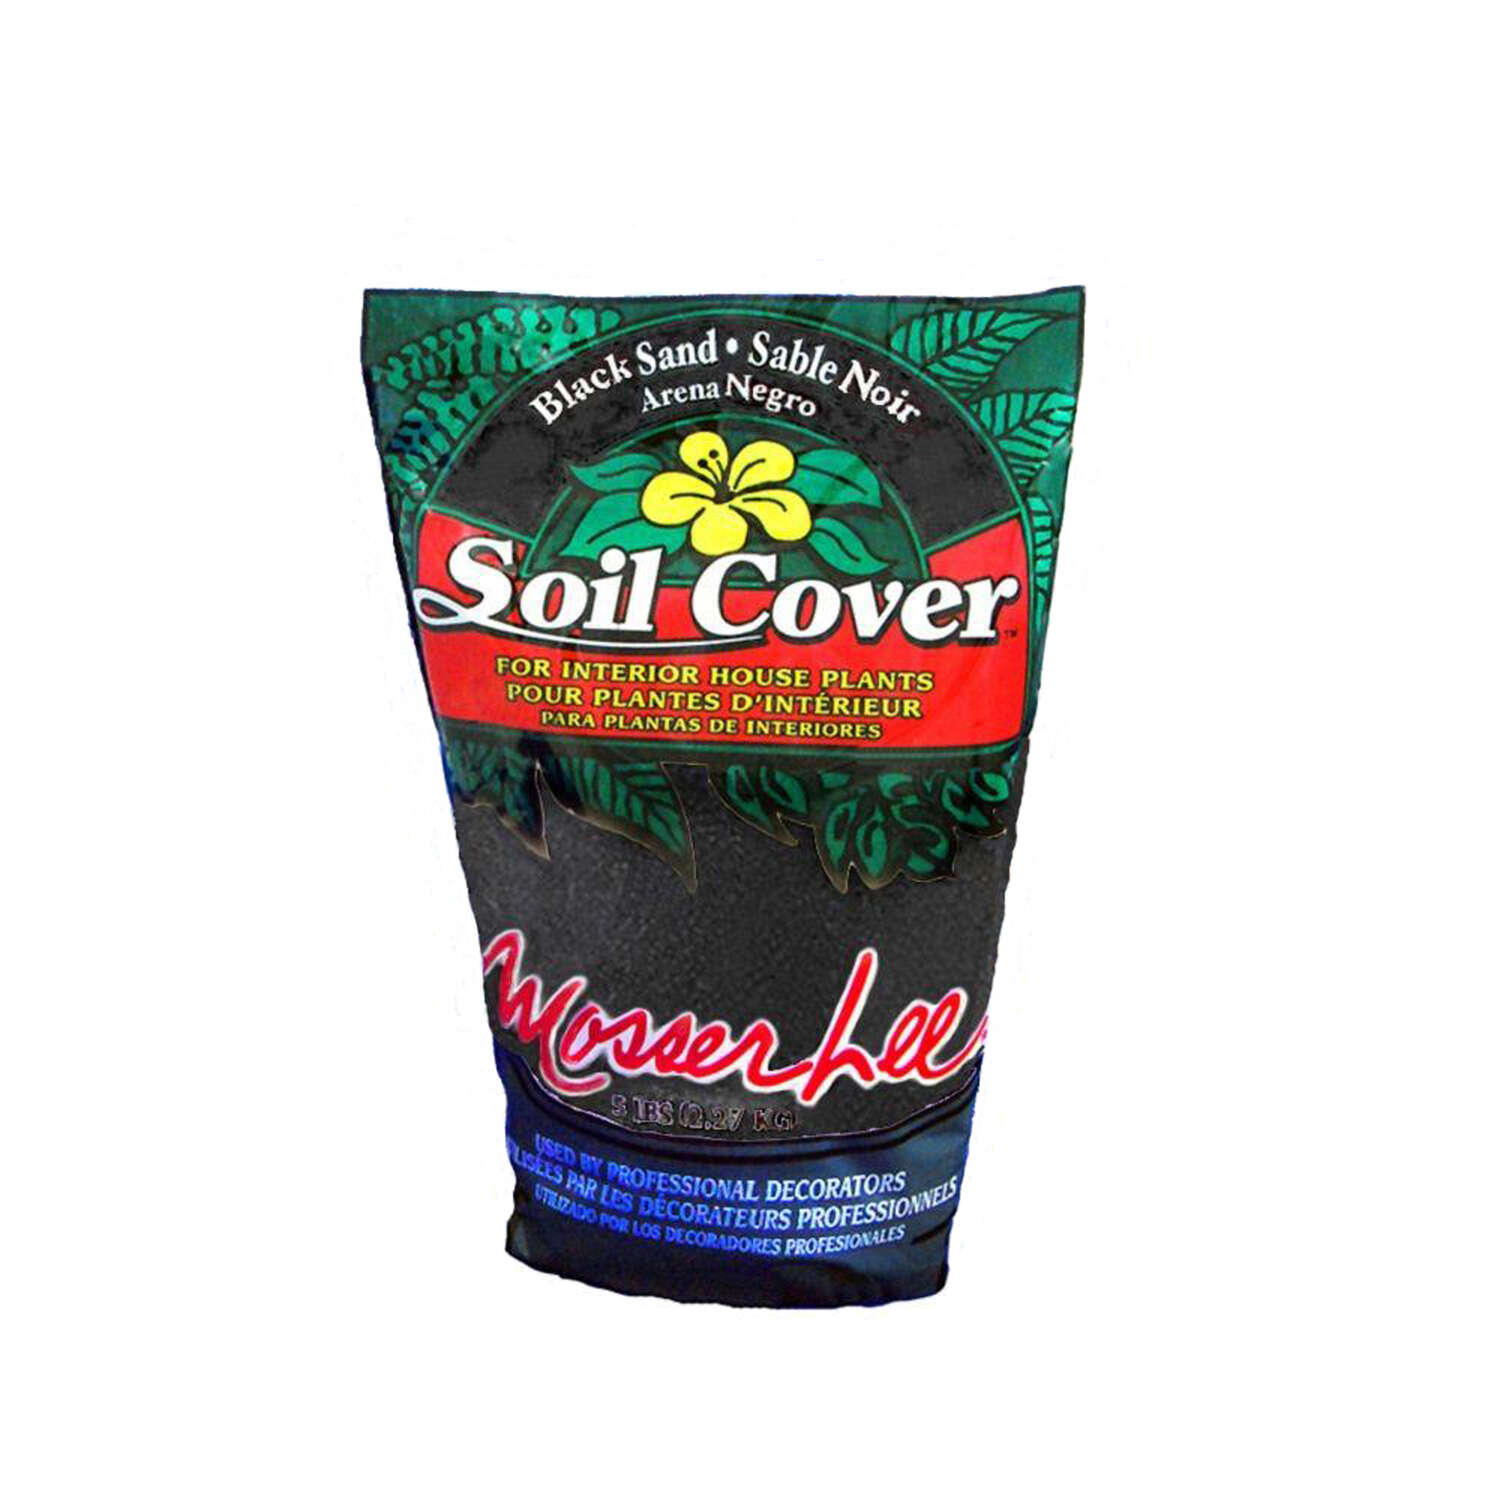 Mosser Lee Black Sand Soil Cover 1.5 quart, dry